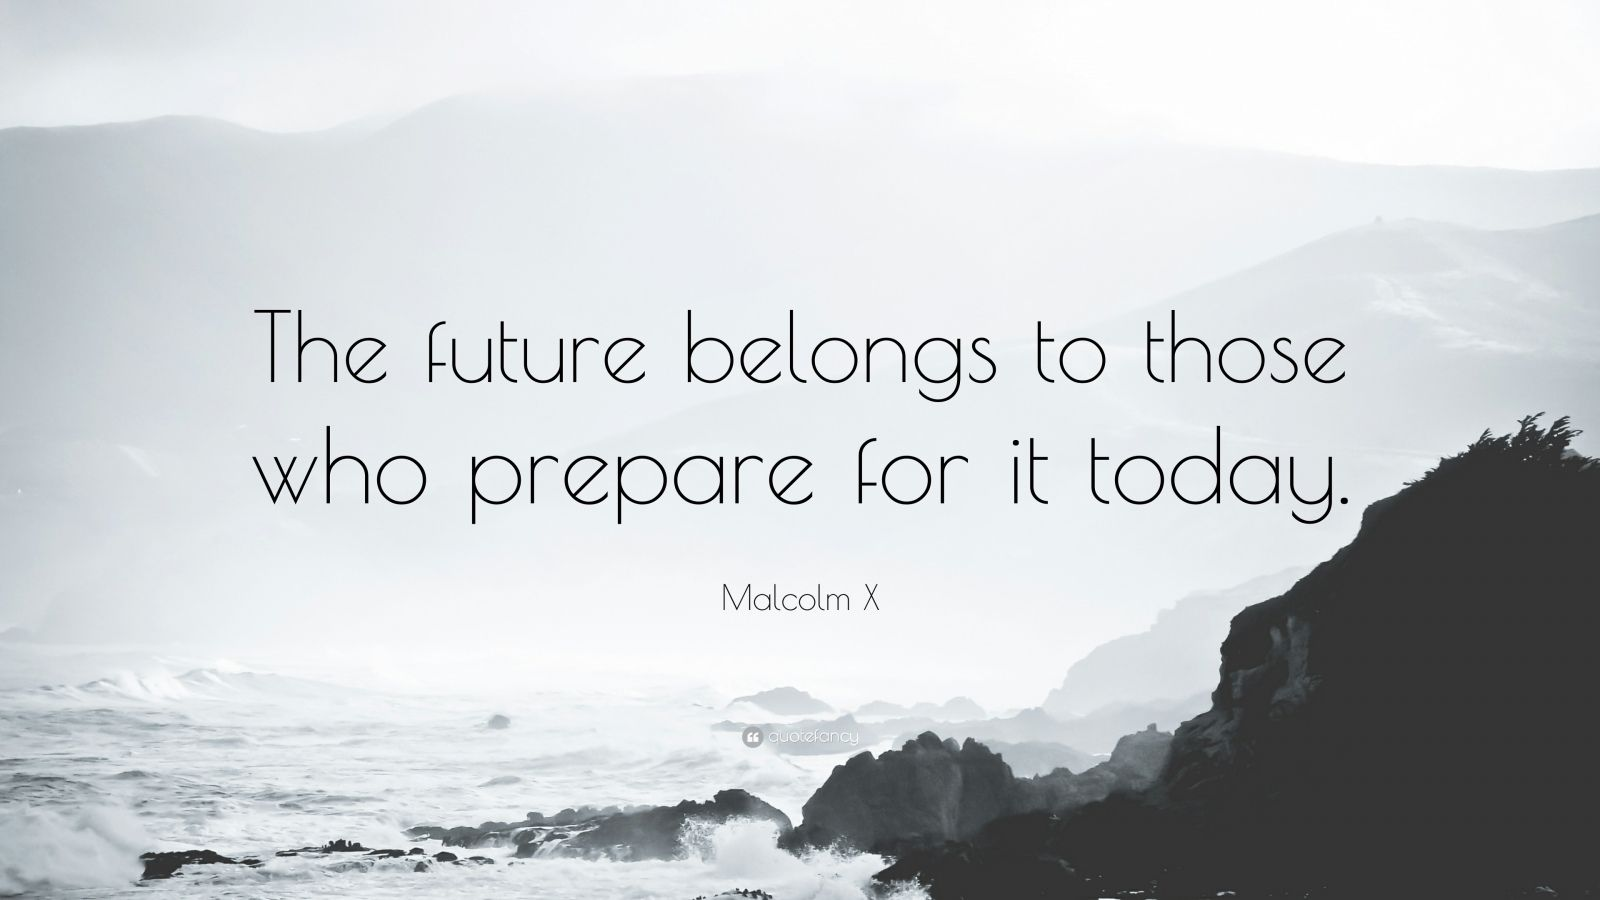 malcolm x quotes quotefancy malcolm x quote the future belongs to those who prepare for it today